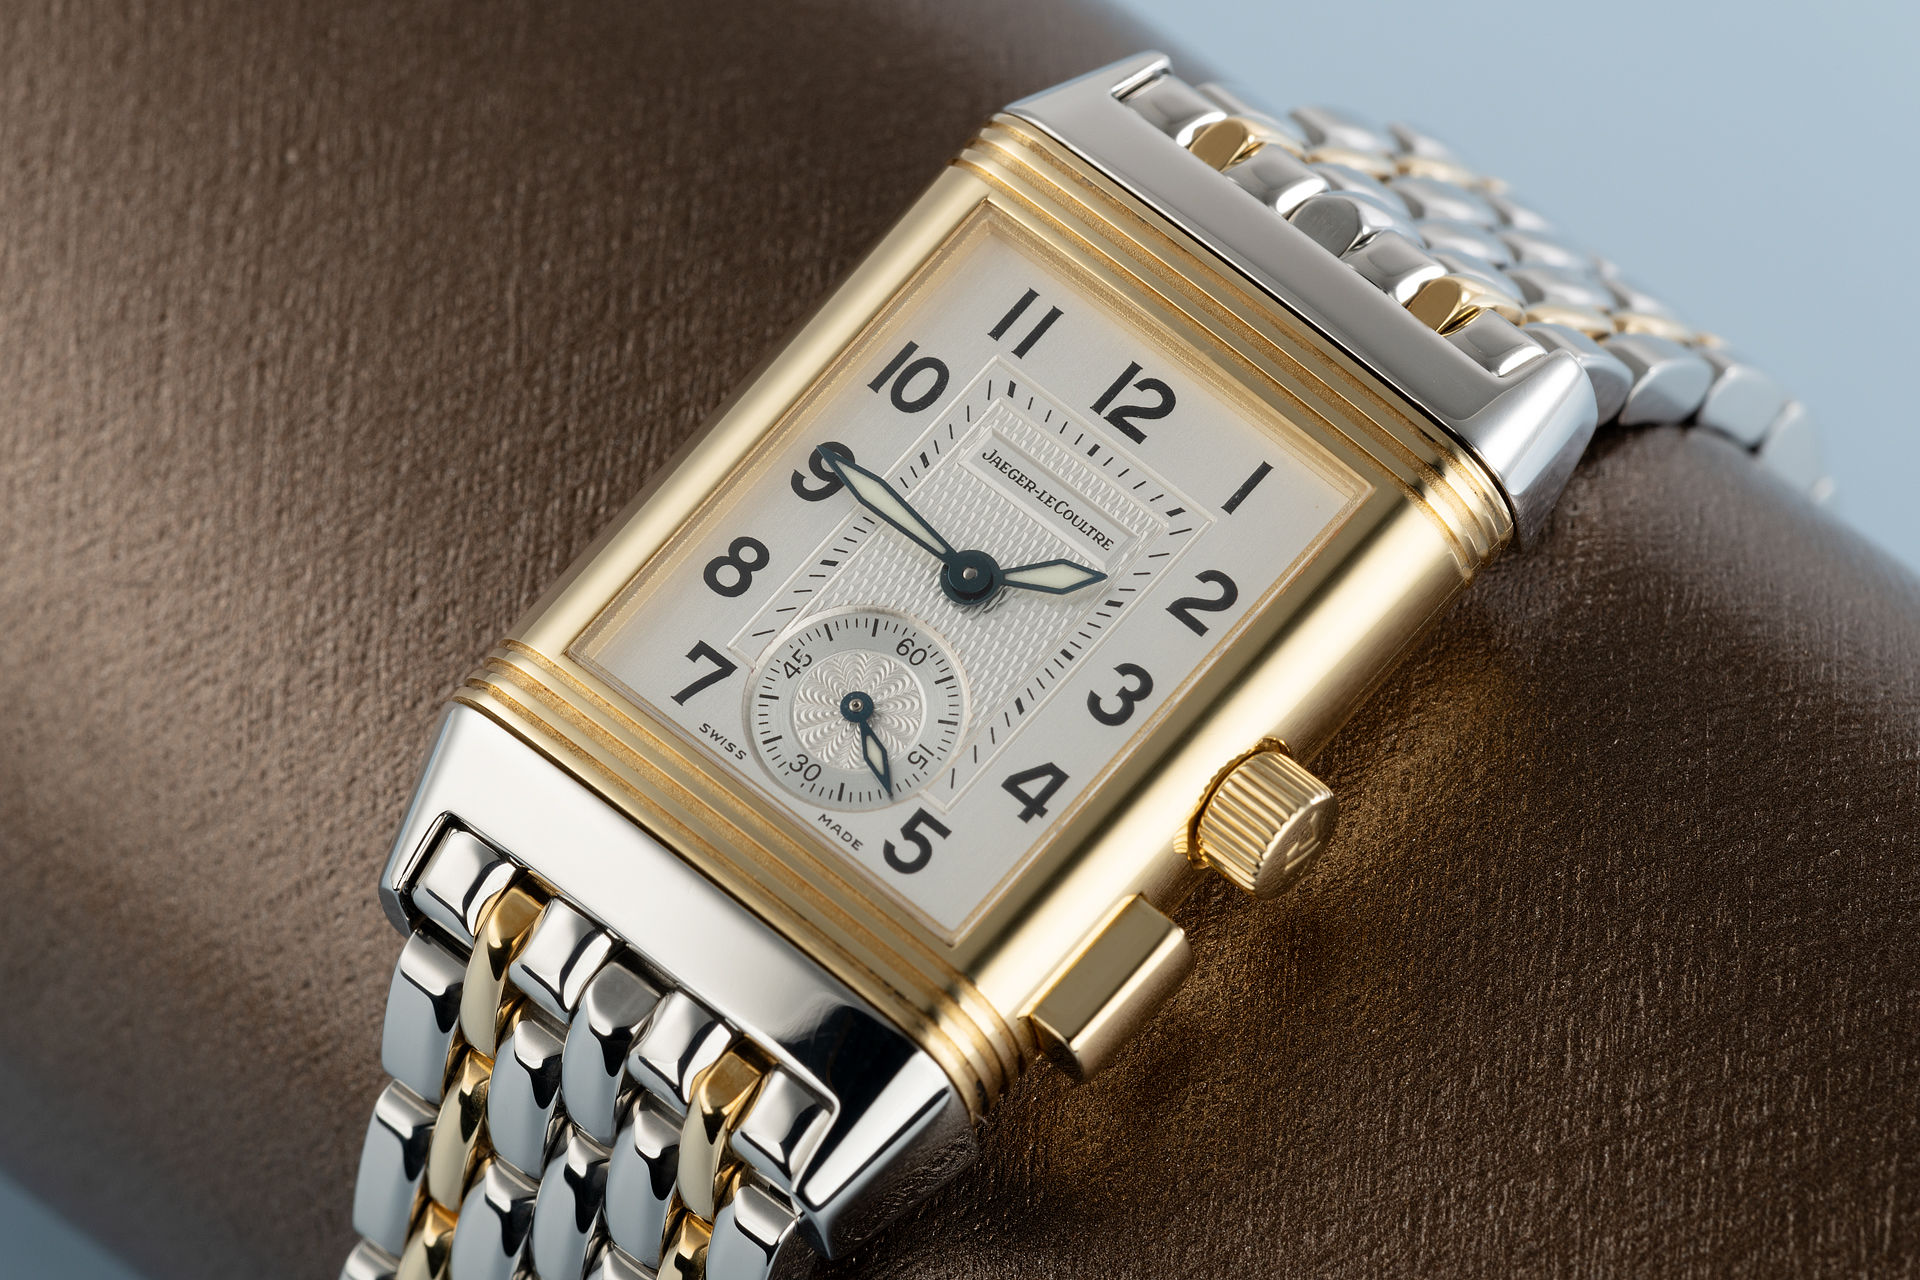 18ct Gold & Steel  | ref 255.5.82 | Jaeger-leCoultre Reverso